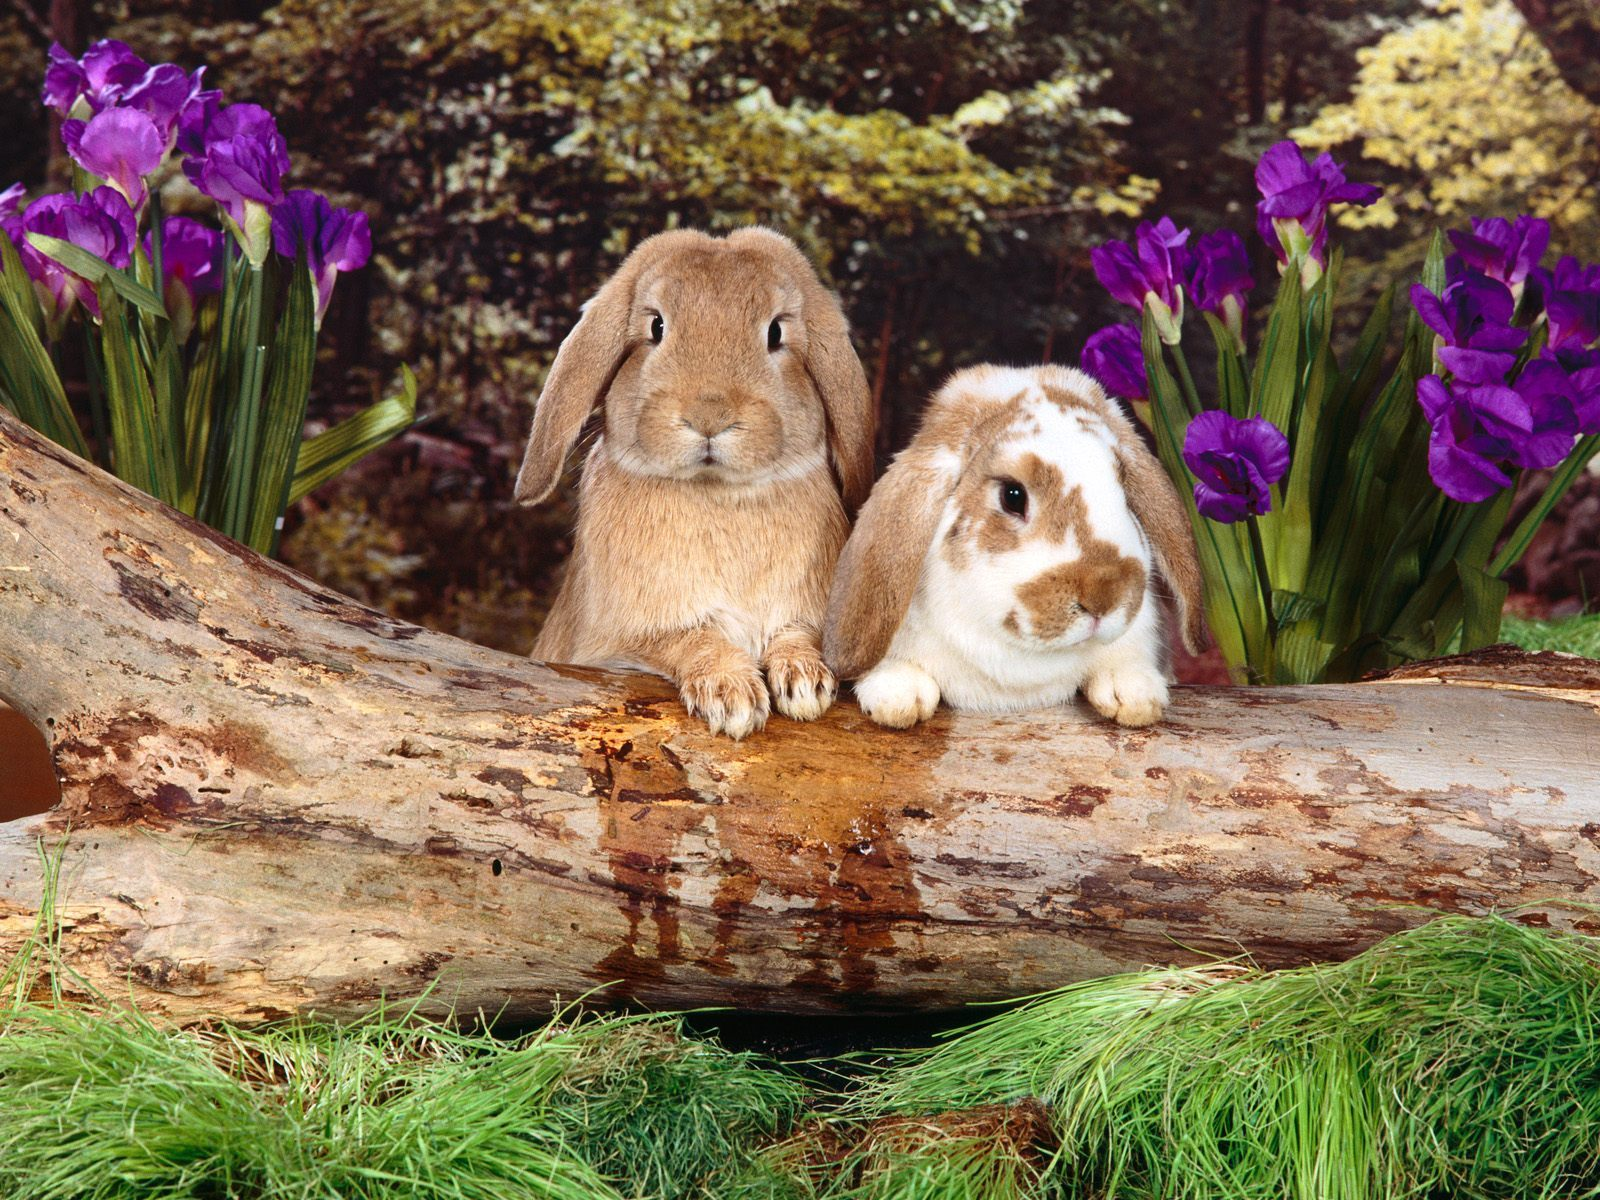 10592 download wallpaper Animals, Rodents, Rabbits screensavers and pictures for free